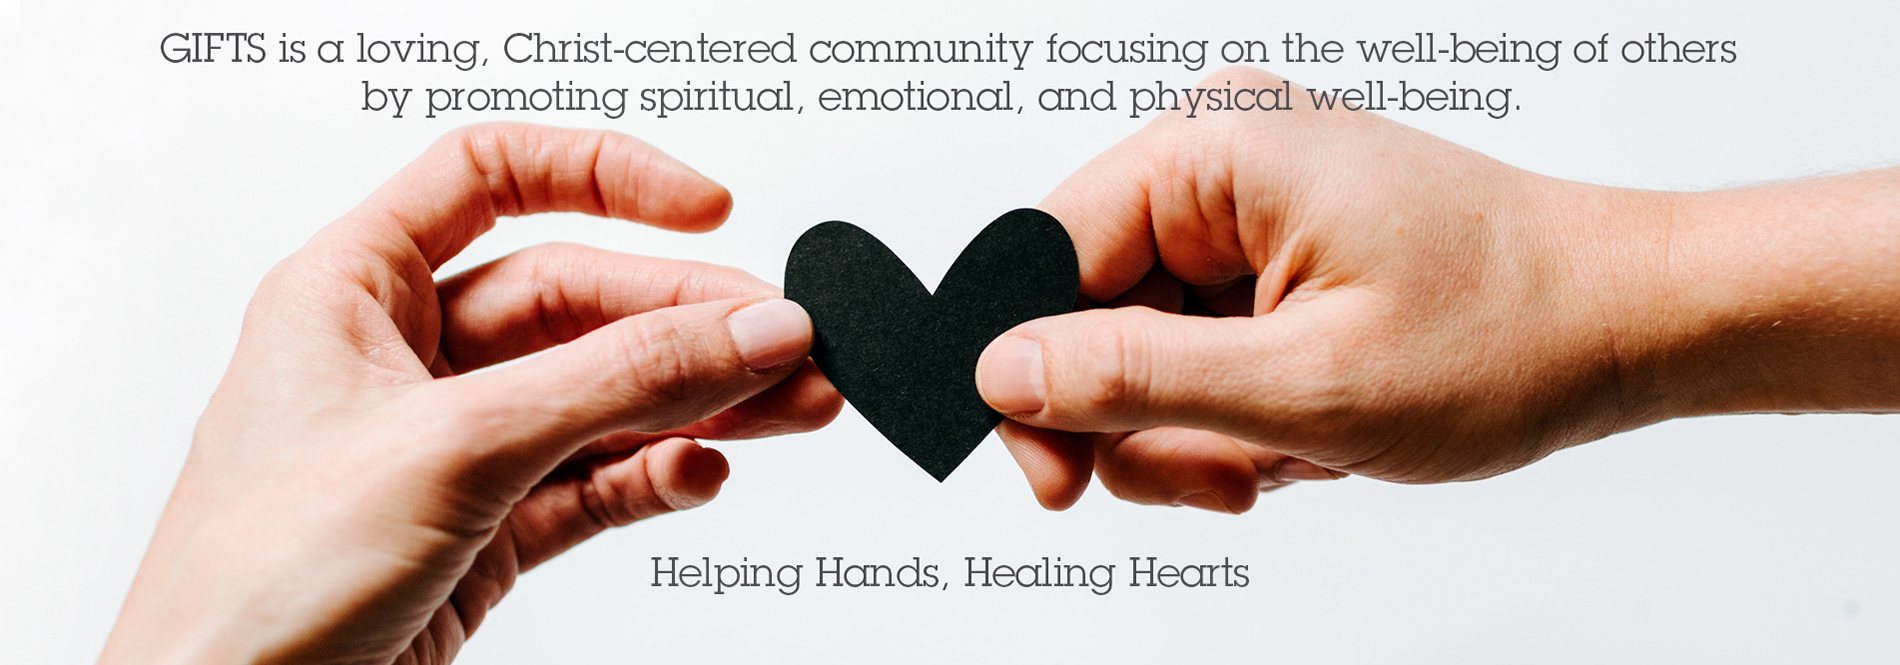 Helping Hands, Healing Hearts